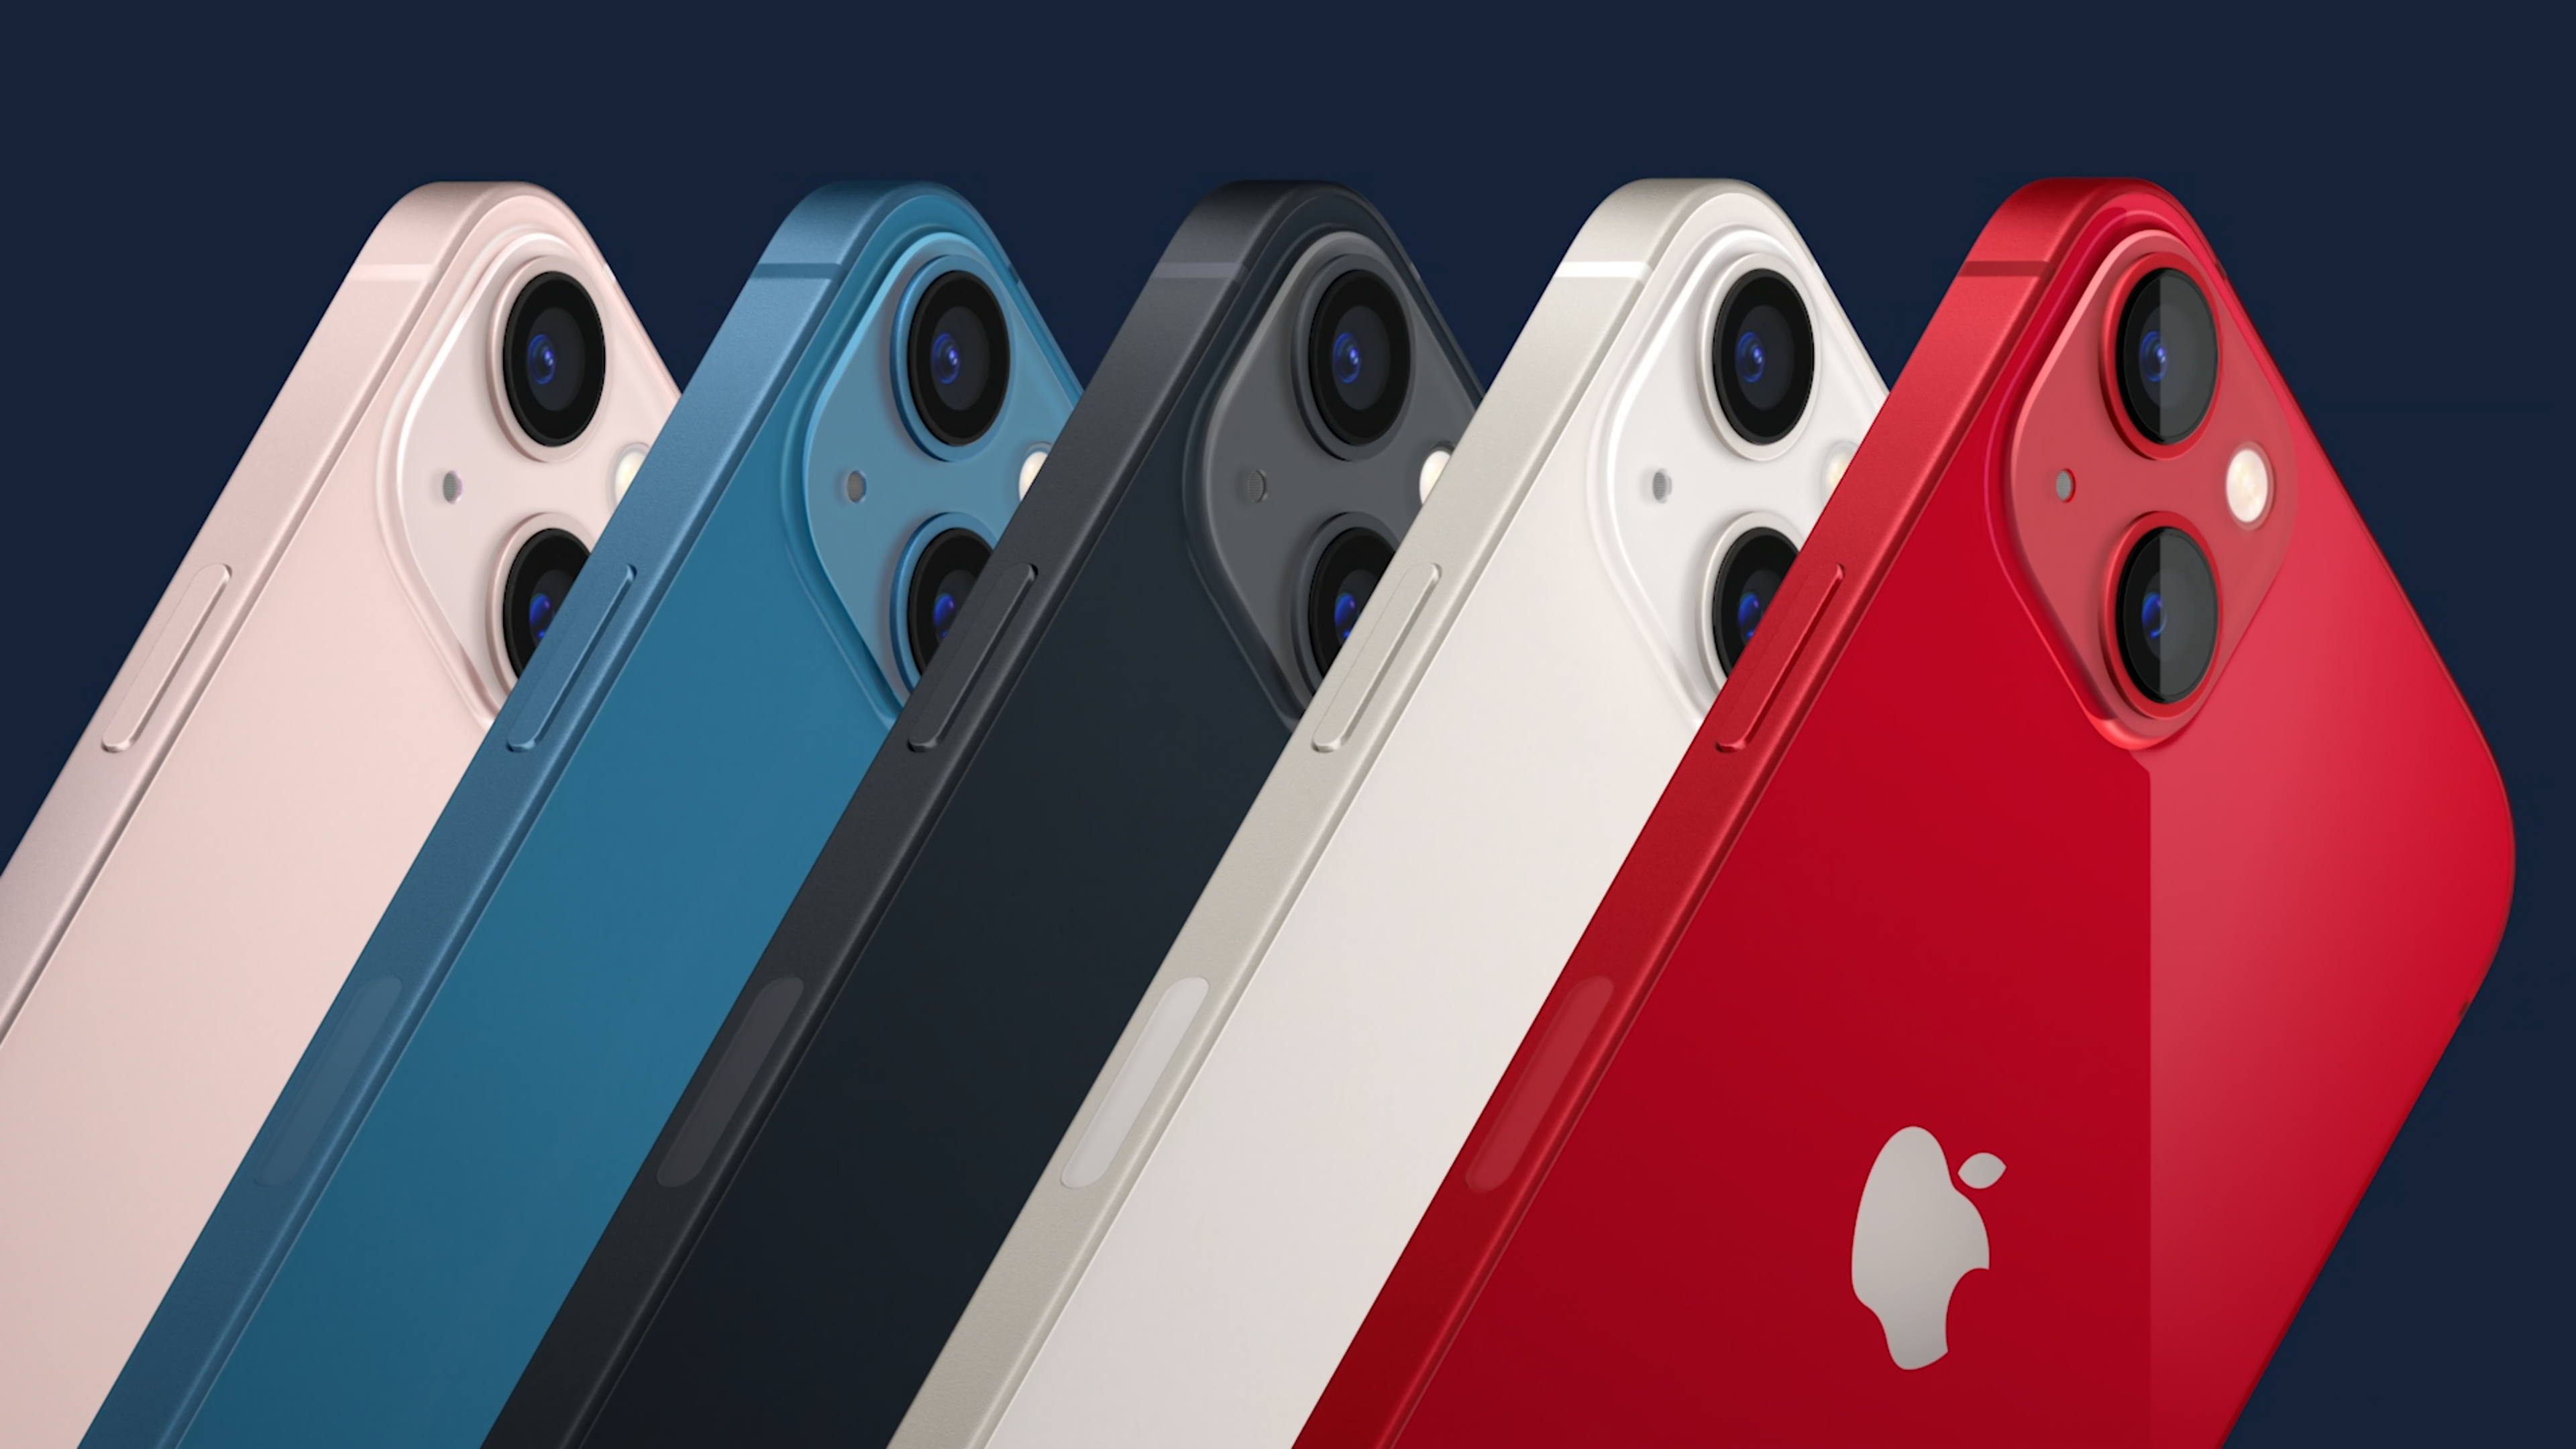 Buy a 'free' iPhone 13 with trade-in at Verizon, T-Mobile and AT&T: All you need to know